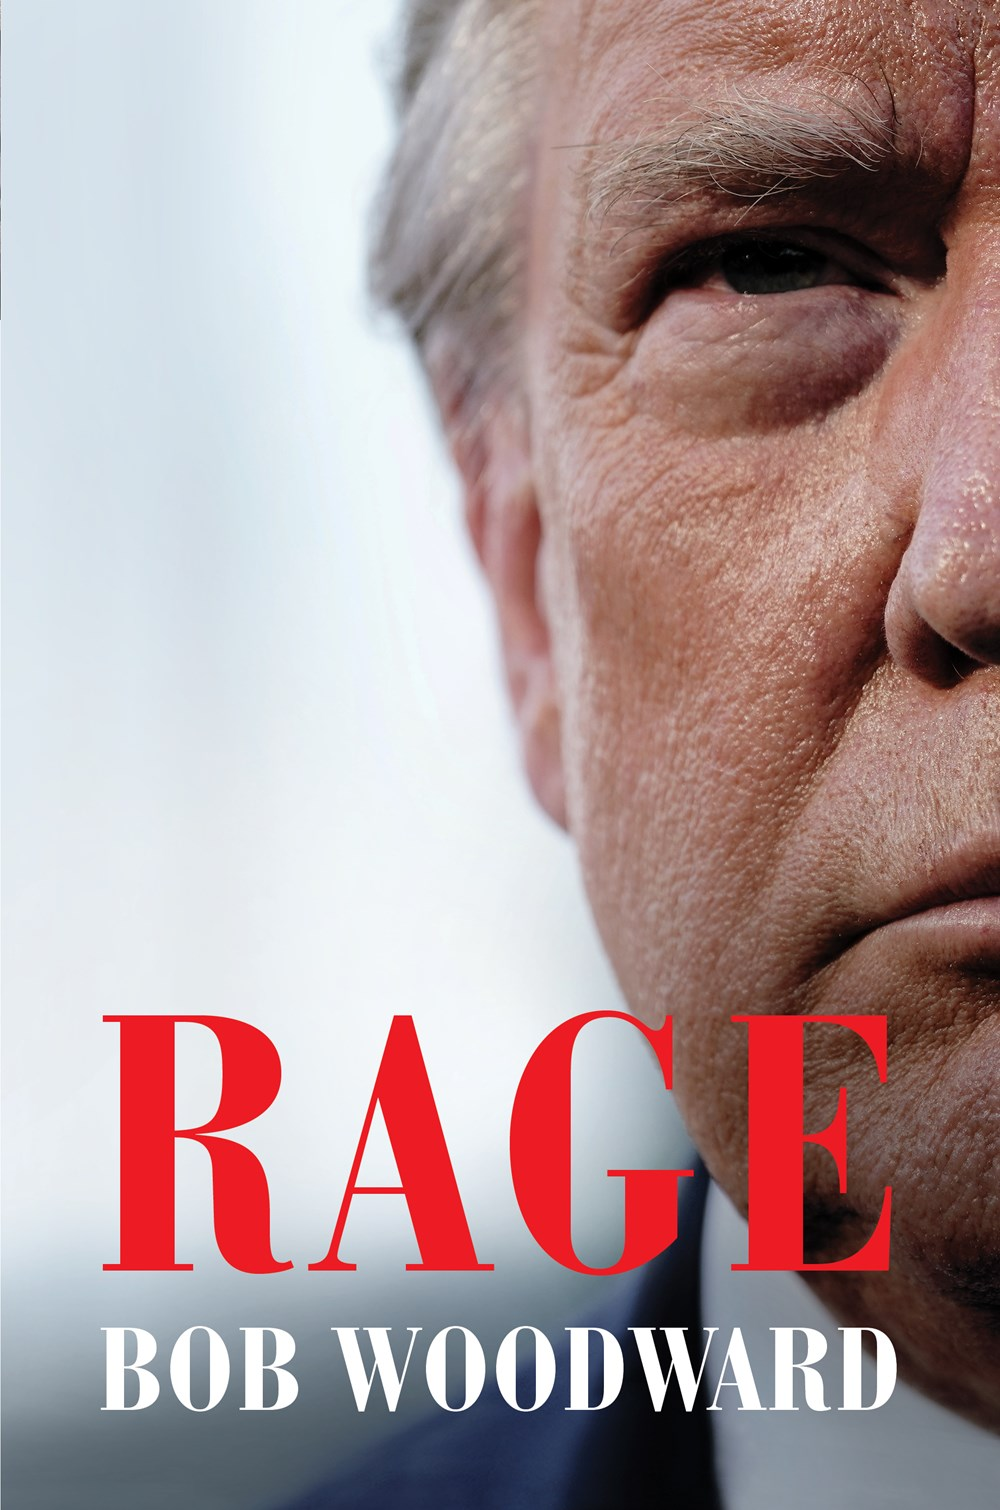 'Rage' by Bob Woodward Leads Library Holds| Book Pulse